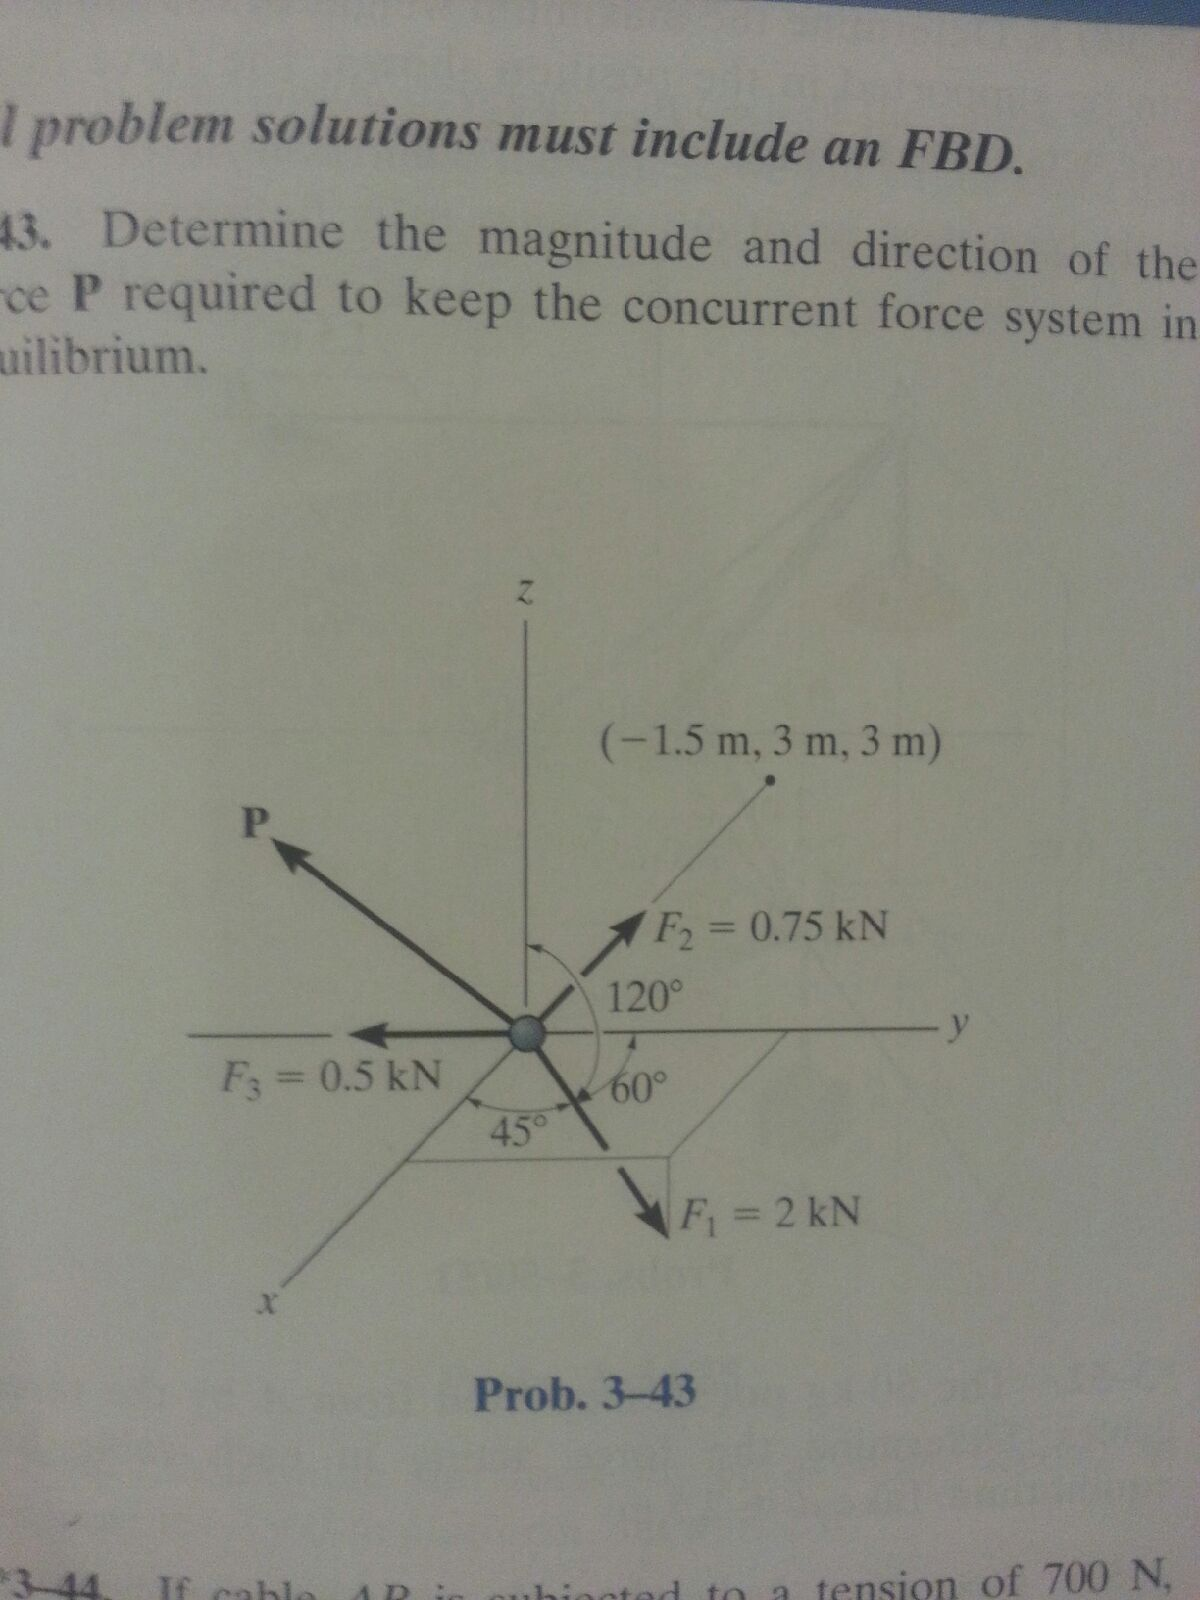 Determine the magnitude and direction of the P re